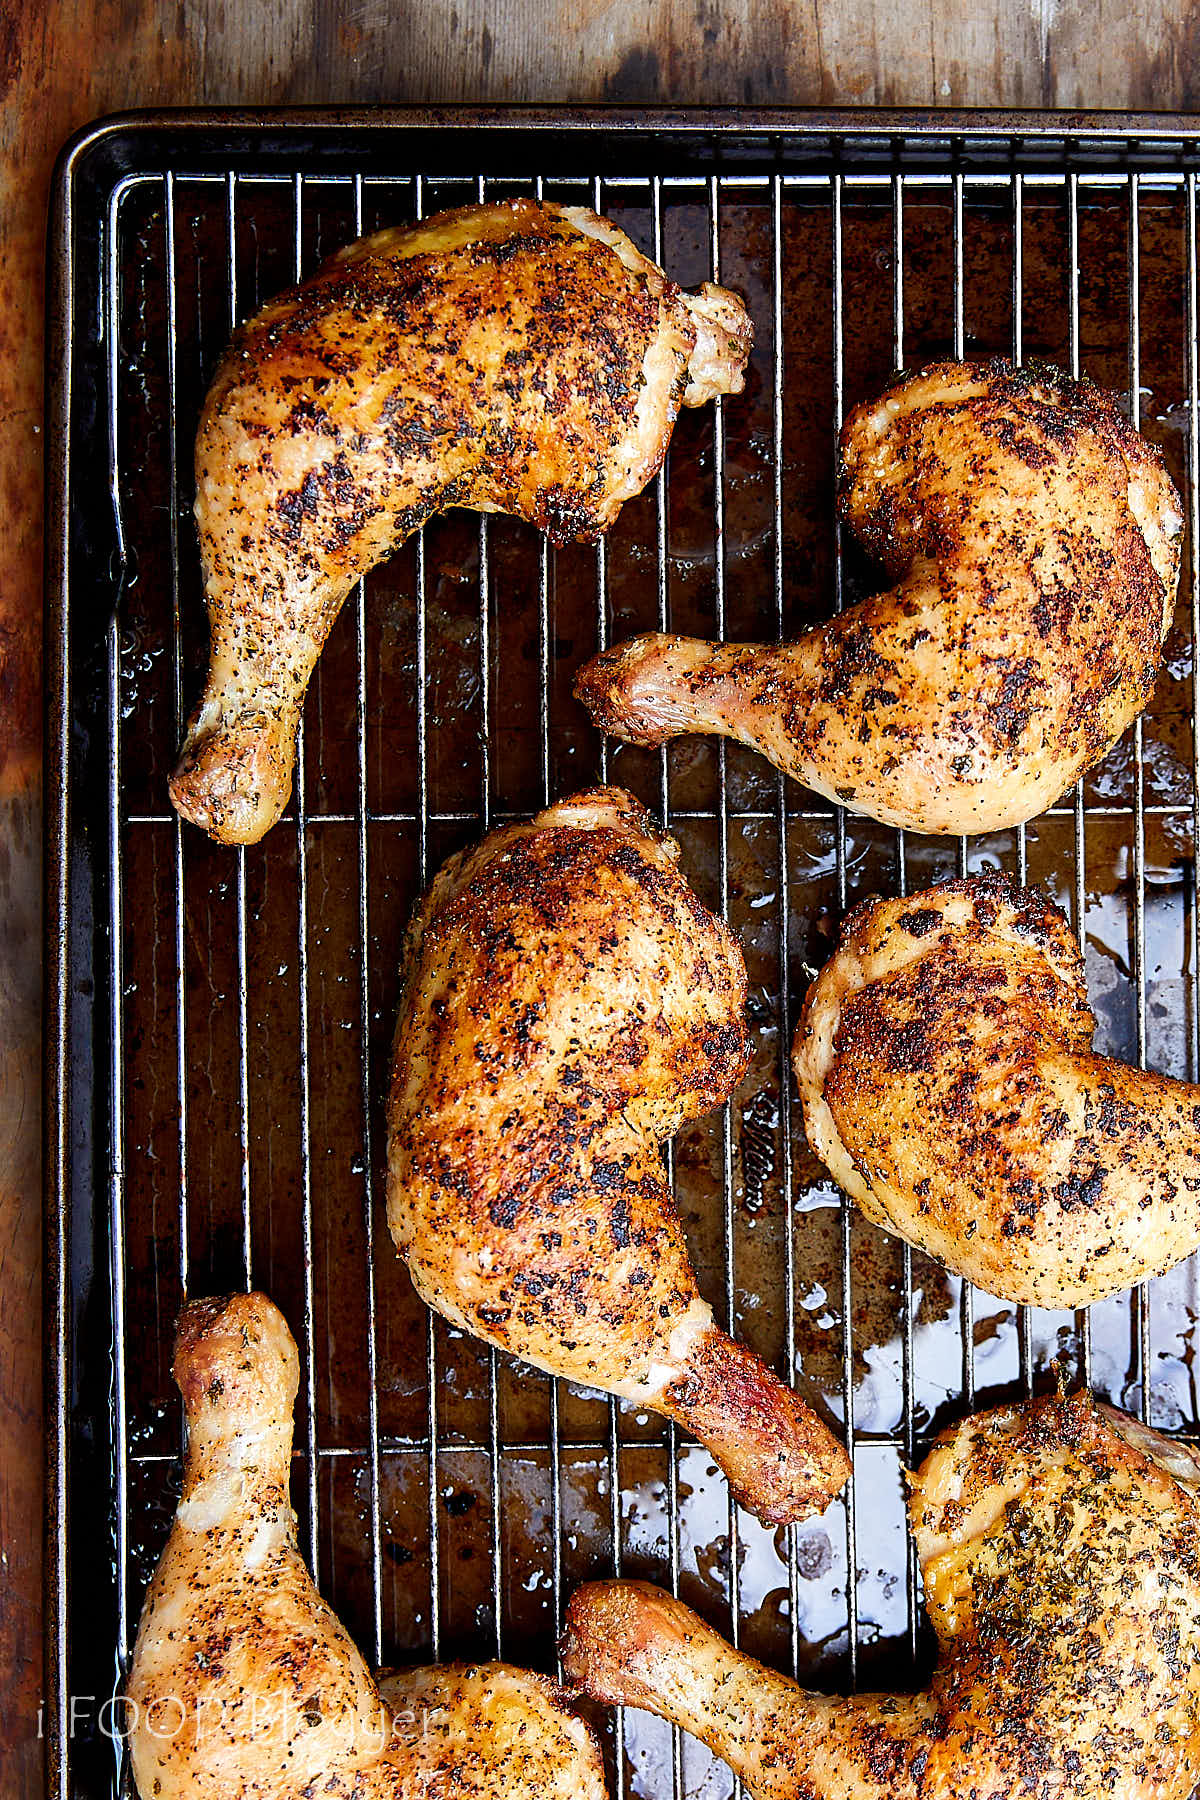 Crispy-skinned and fall-off-the-bone tender oven roasted chicken quarters recipe. Very easy to make and perfect every time. | ifoodblogger.com